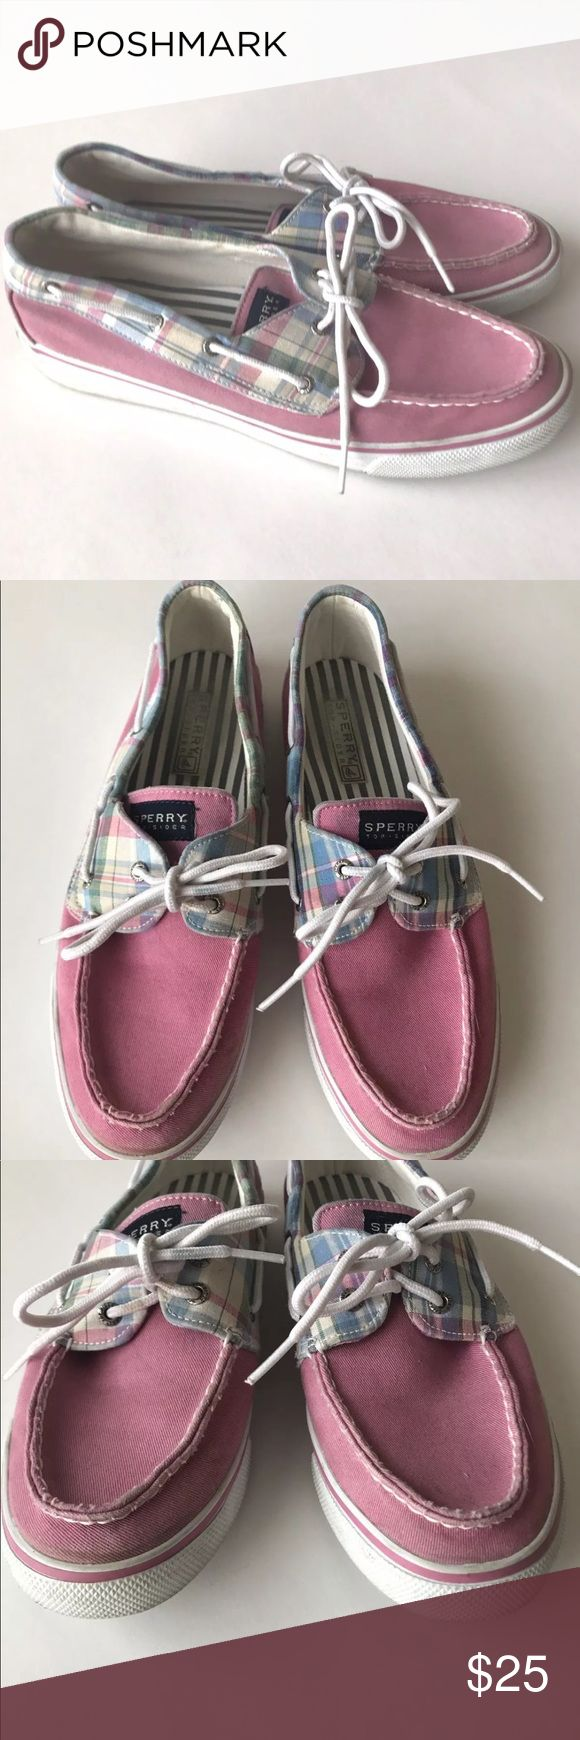 "Sperry plaid biscayne boat shoes pink loafers 10 Sperry Top-Sider Women's Biscayne Plaid Boat Shoe - Pink Plaid   Ready for boating season or just want to take on the nautical trend? The Sperry Top-Sider Biscayne is a casual shoe with fun, updated prints to pair with your boatneck top and capris. | Plaid canvas upper | Webbed lacing detail | Padded fabric insole with Sperry logo | 3/4"" heel 